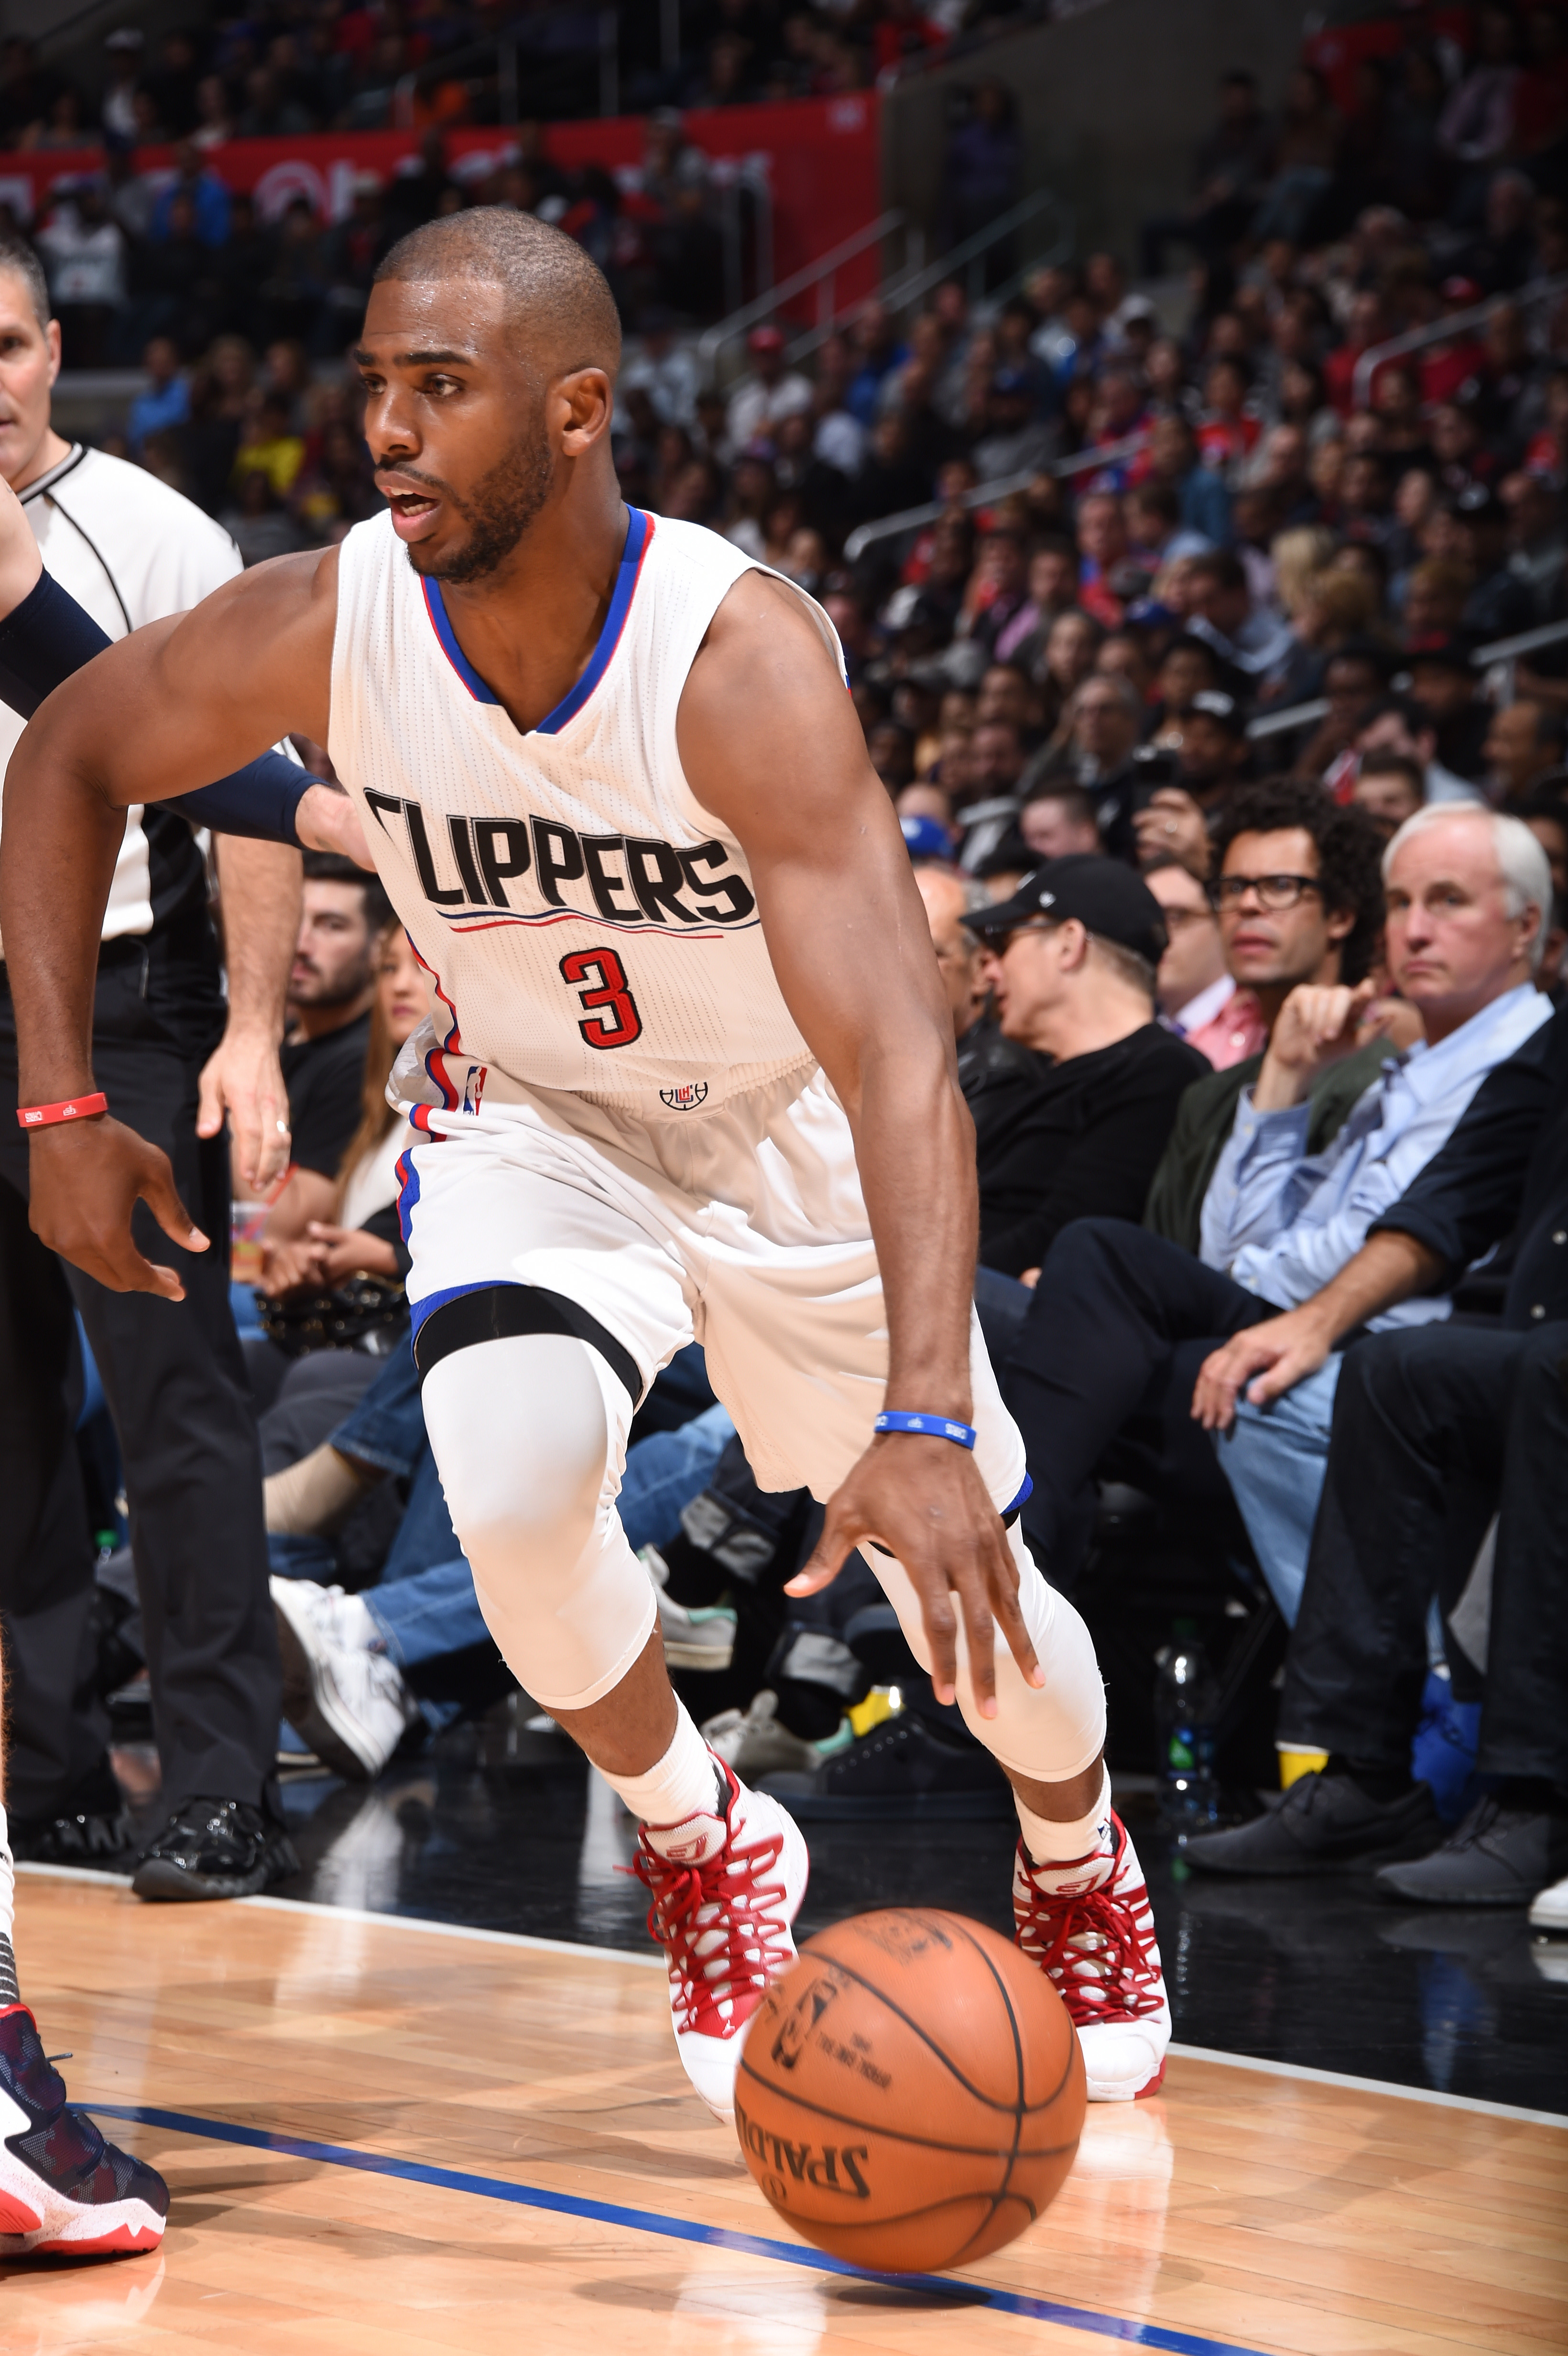 LOS ANGELES, CA - APRIL 12: Chris Paul #3 of the Los Angeles Clippers handles the ball against the Memphis Grizzlies on April 12, 2016 at STAPLES Center in Los Angeles, California. (Photo by Andrew D. Bernstein/NBAE via Getty Images)